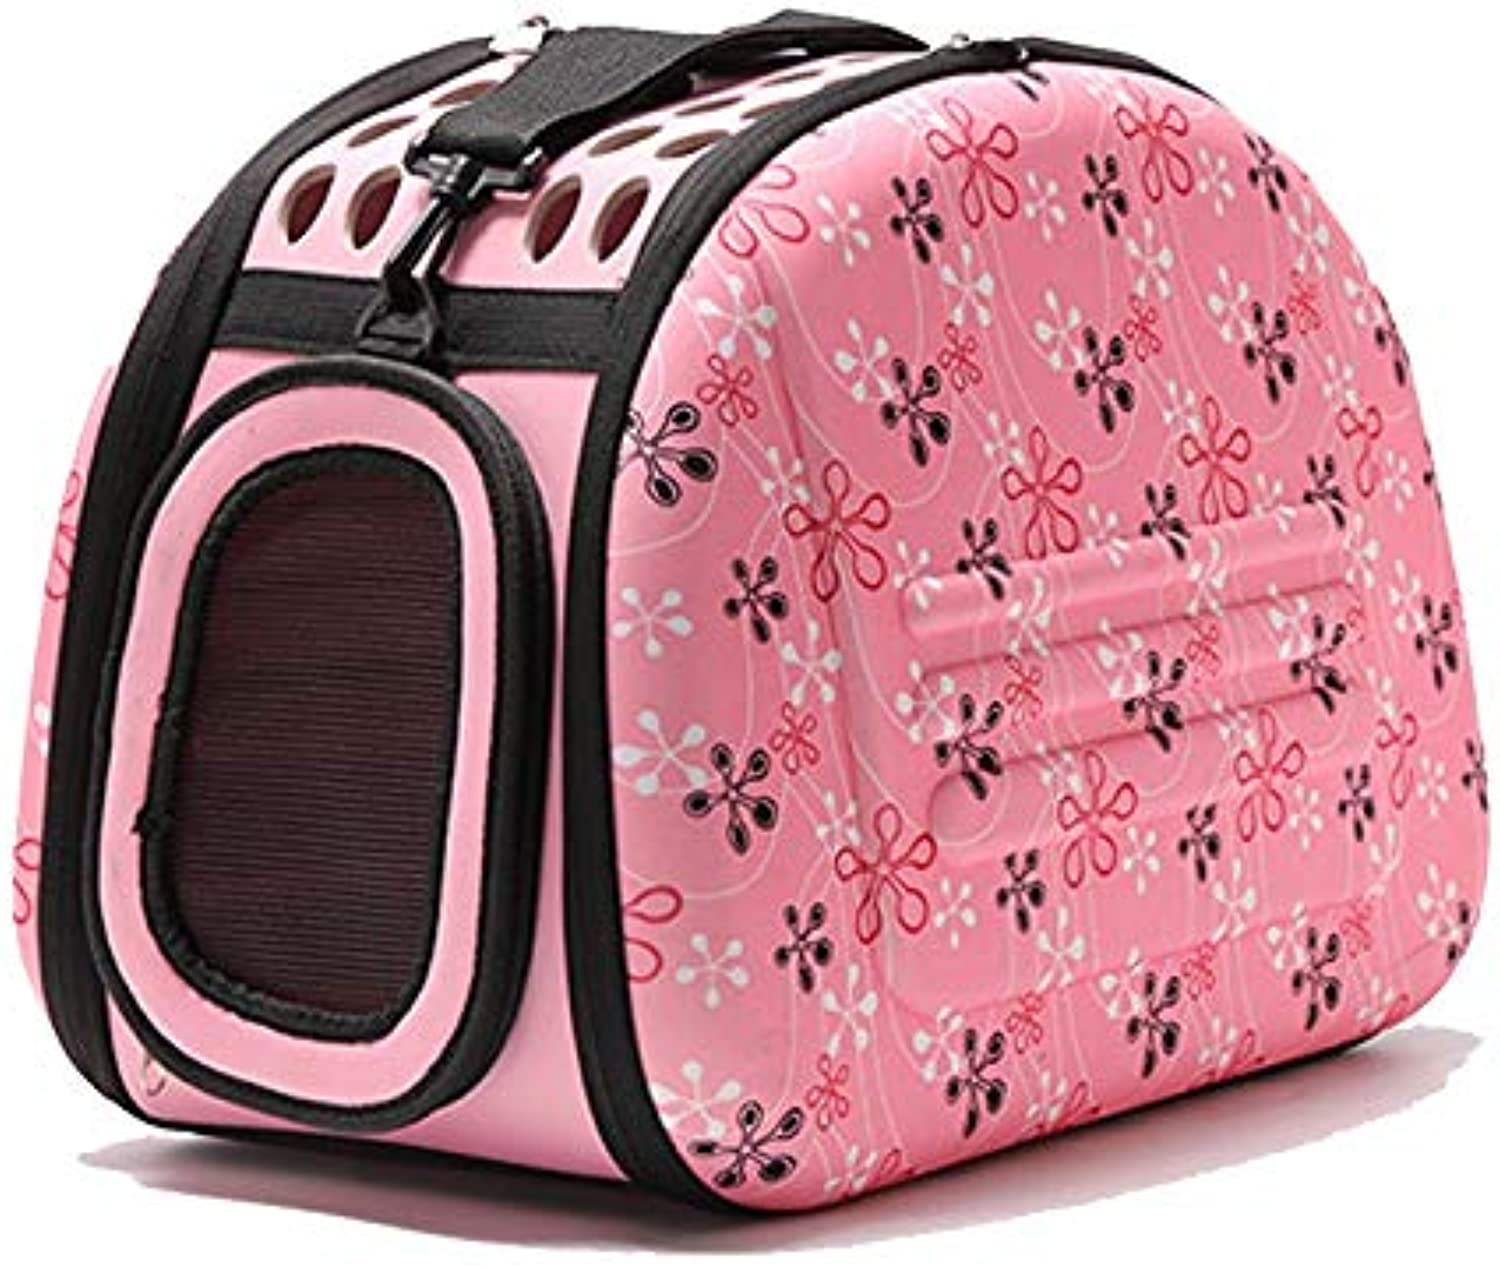 LZRZBH CrossBody Pet Bag Foldable Pet Cat Dog Carrier Cage Collapsible Travel Kennel  Portable Pet Carrier Outdoor Shoulder Bag for Small Animal Puppy Kitty (color   Pink)